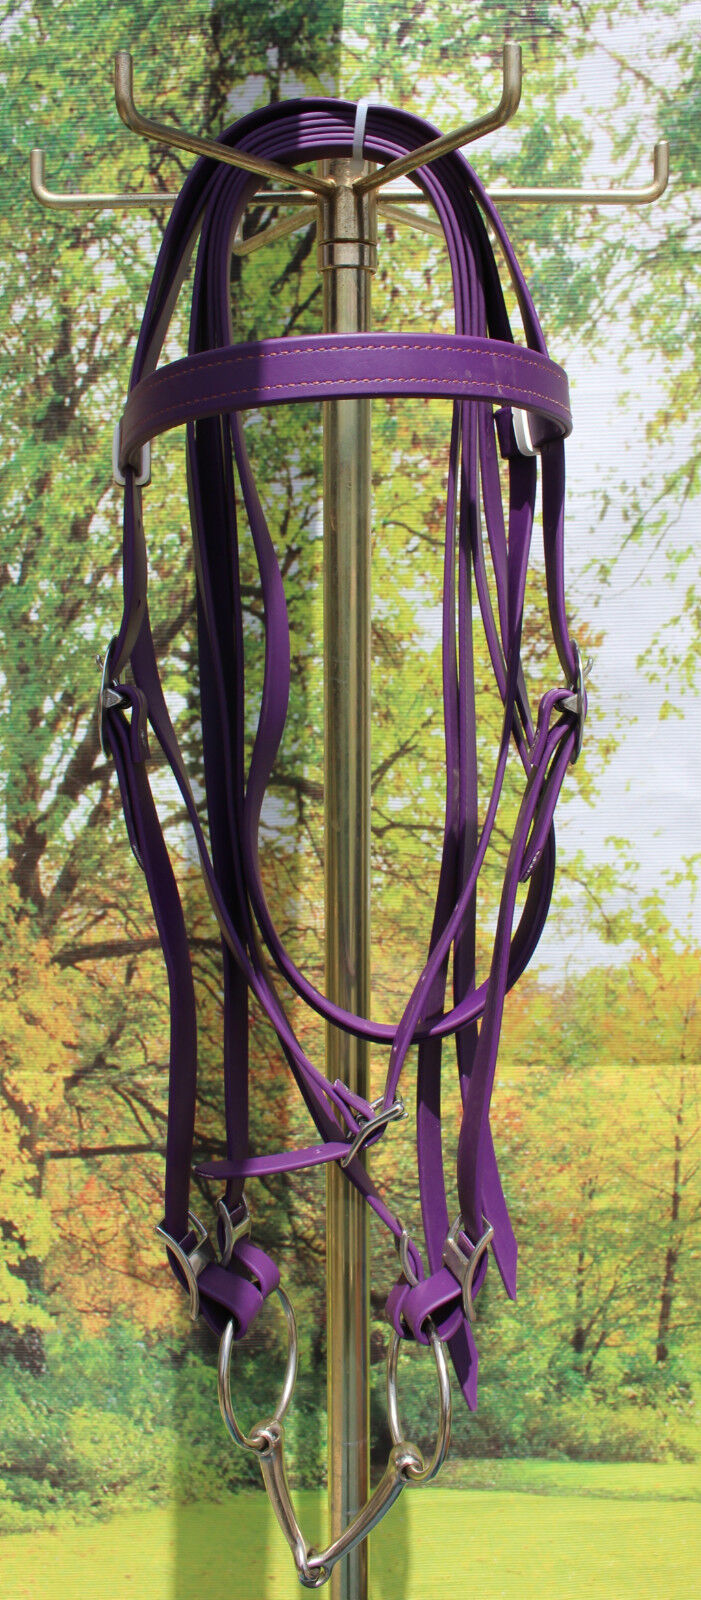 Draft horse beta biothane riding bridle with 6   O ring snaffle PURPLE USA made  factory direct and quick delivery